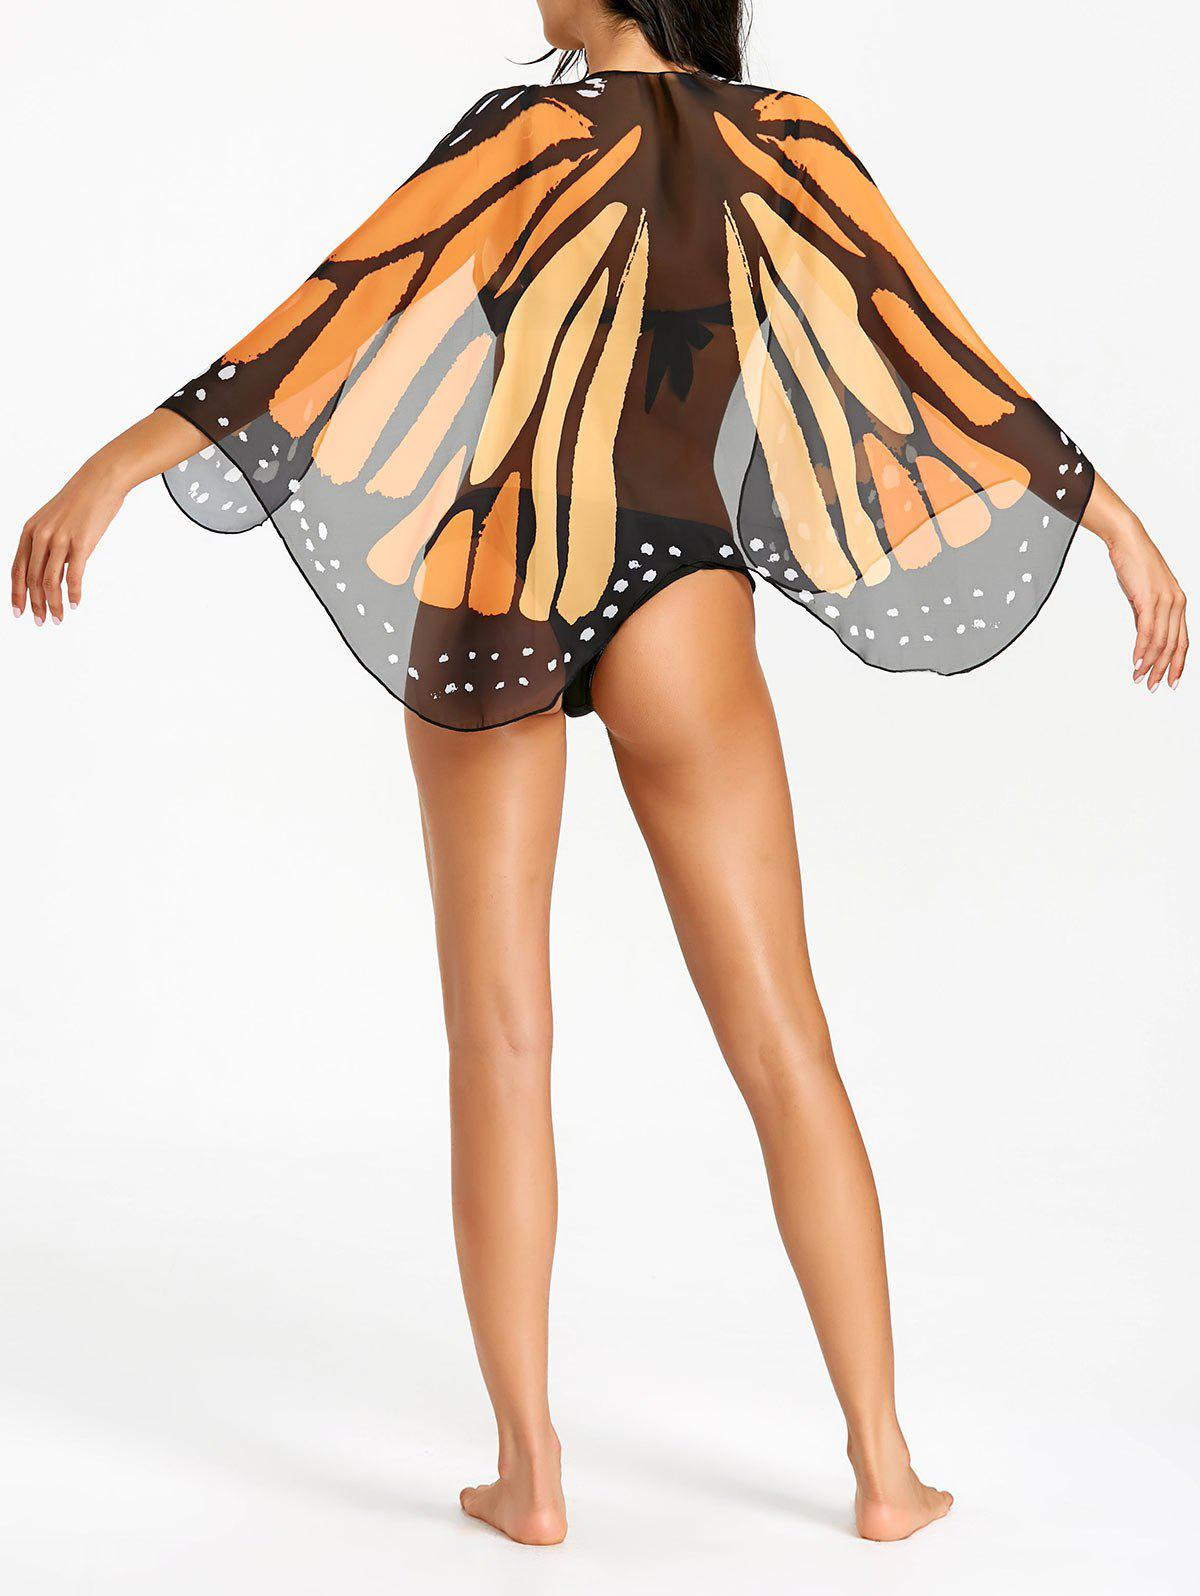 Discount Butterfly Wing Chiffon Sheer Beach Cover Up